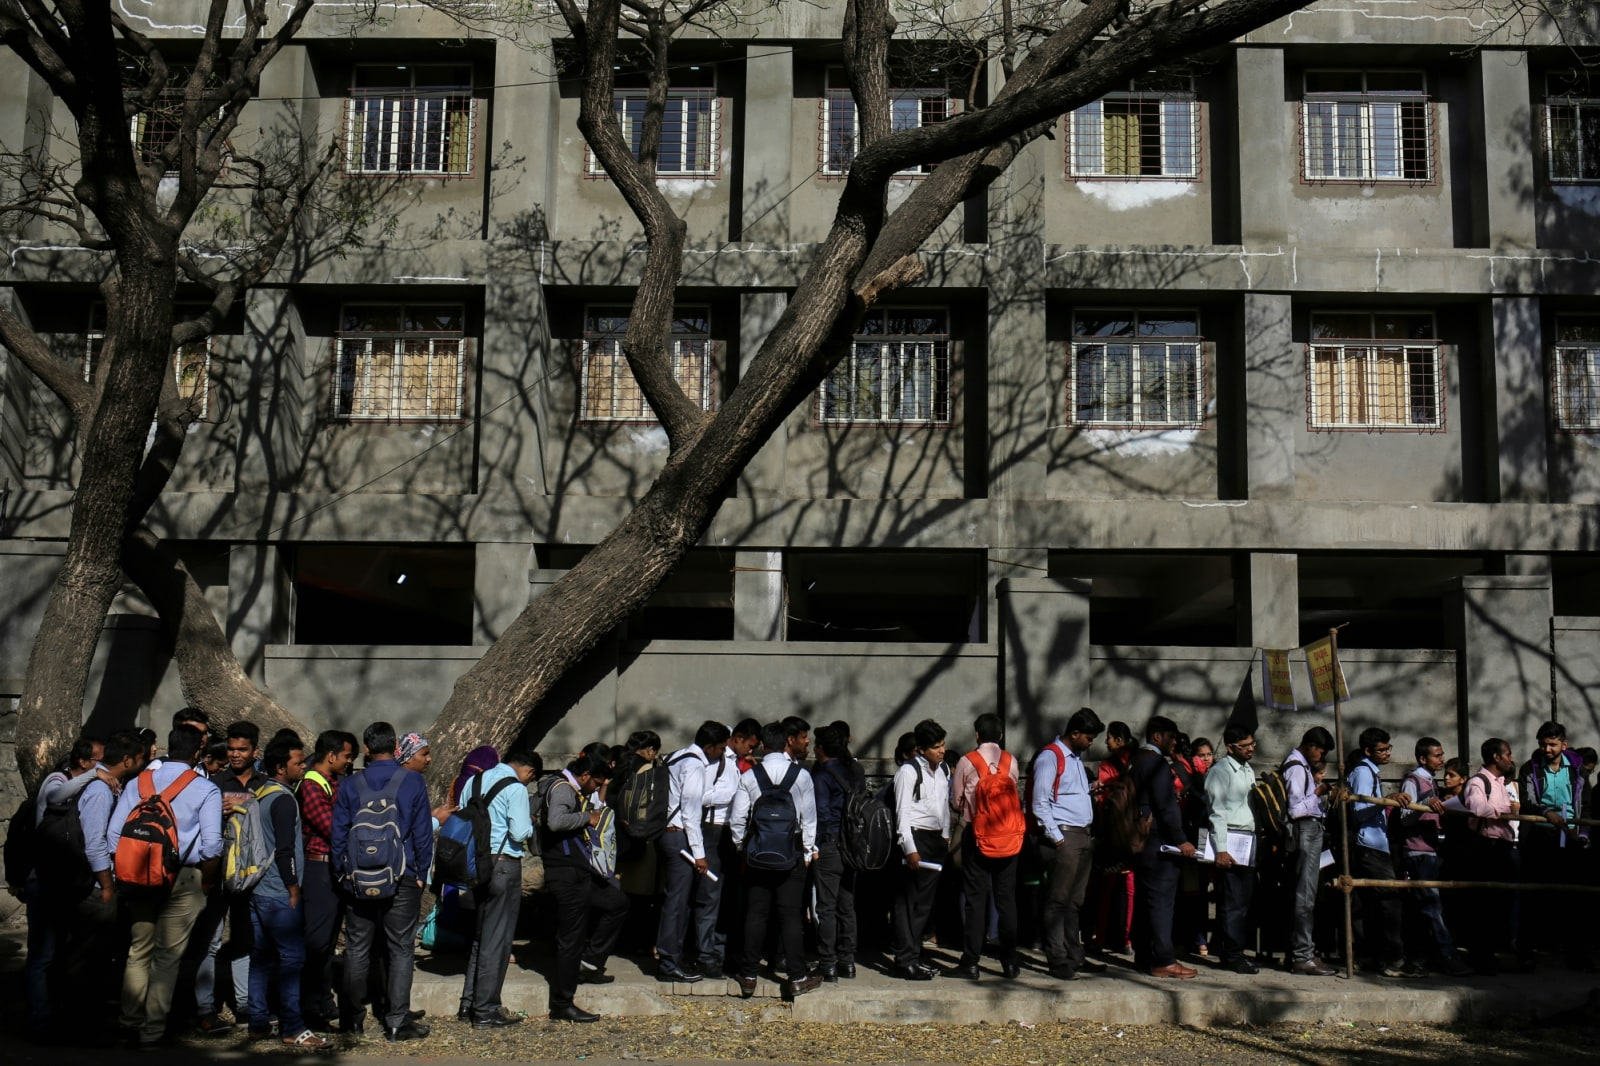 Job seekers line up outside the venue of a job fair in Chinchwad, February 7, 2019. REUTERS/Danish Siddiqui/Files